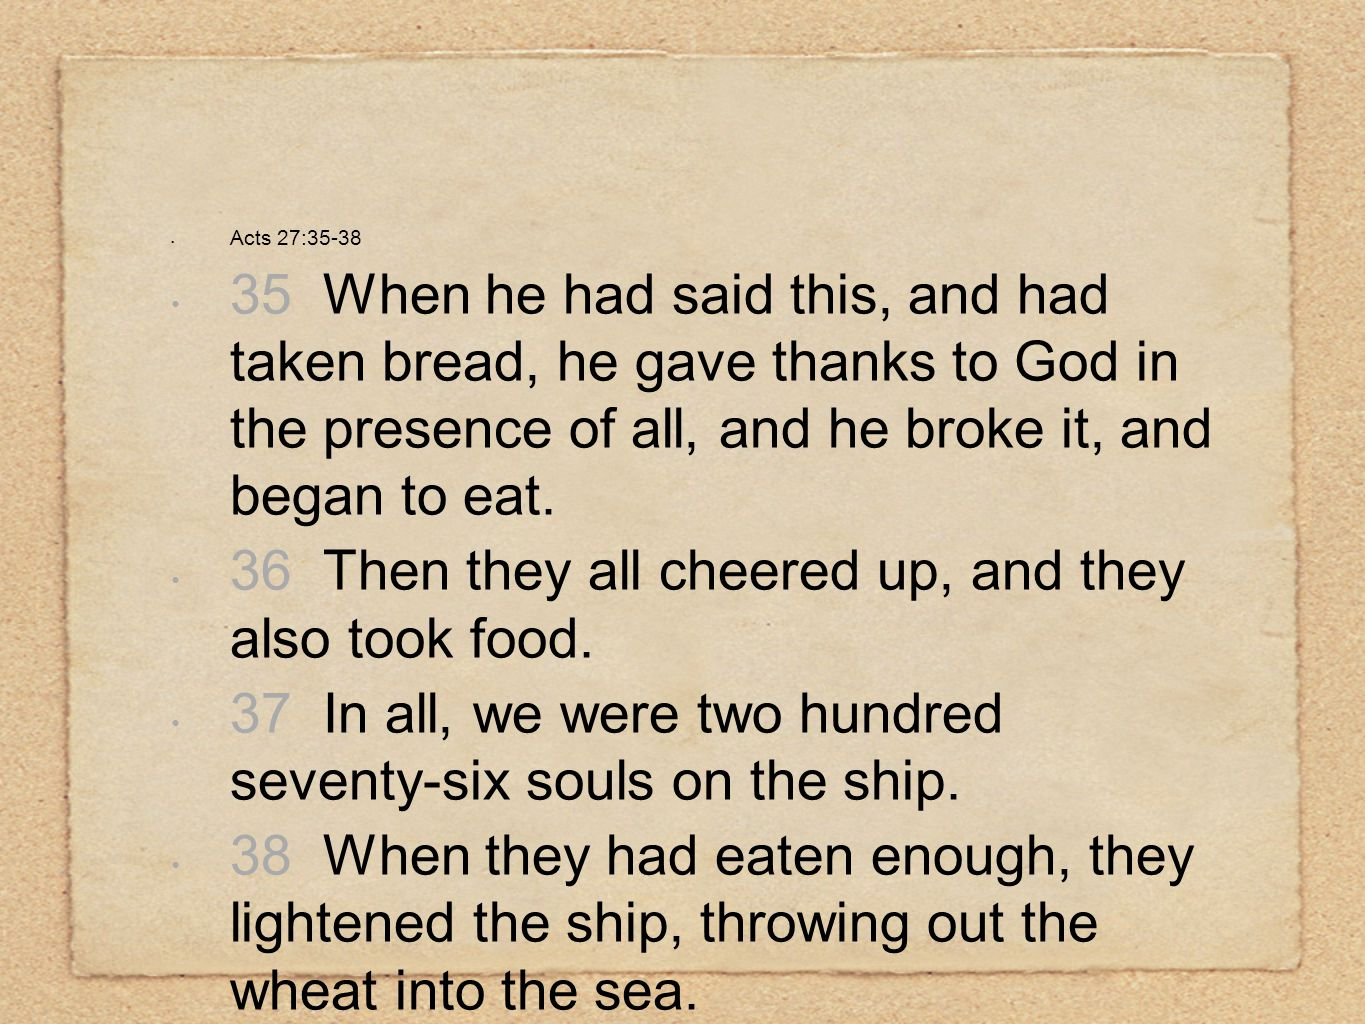 Acts 27:35-38 35 When he had said this, and had taken bread, he gave thanks to God in the presence of all, and he broke it, and began to eat. 36 Then